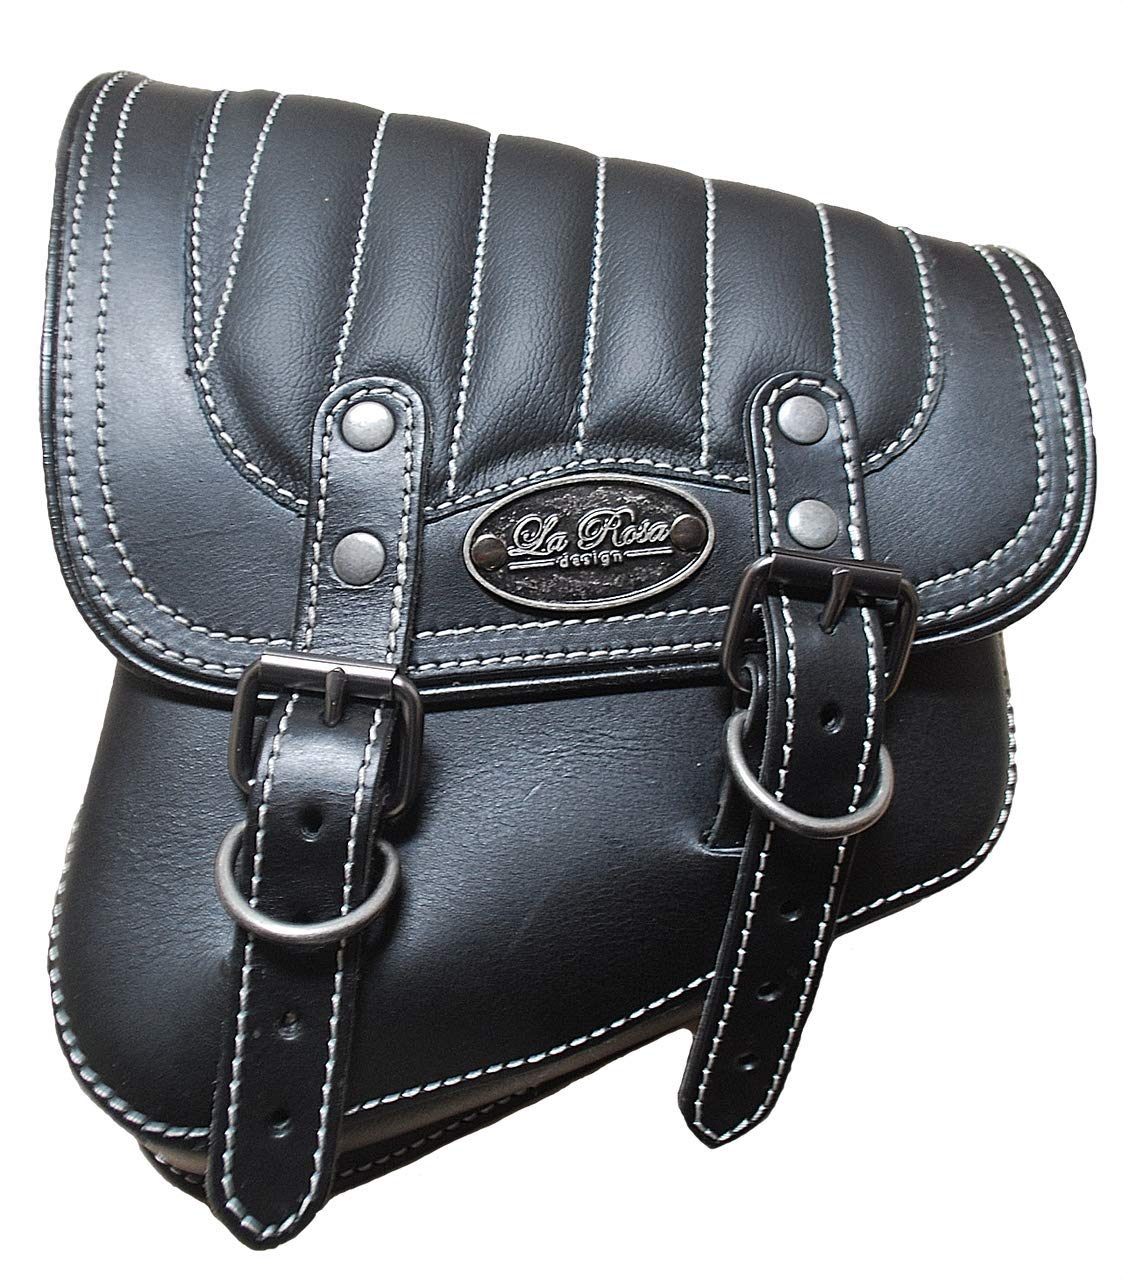 623a02f6cd49 Amazon.com  La Rosa Harley-Davidson All Softail Models Left Side Solo  Saddle Bag Swingarm Bag Black w White Thread Tuk n Roll  Automotive